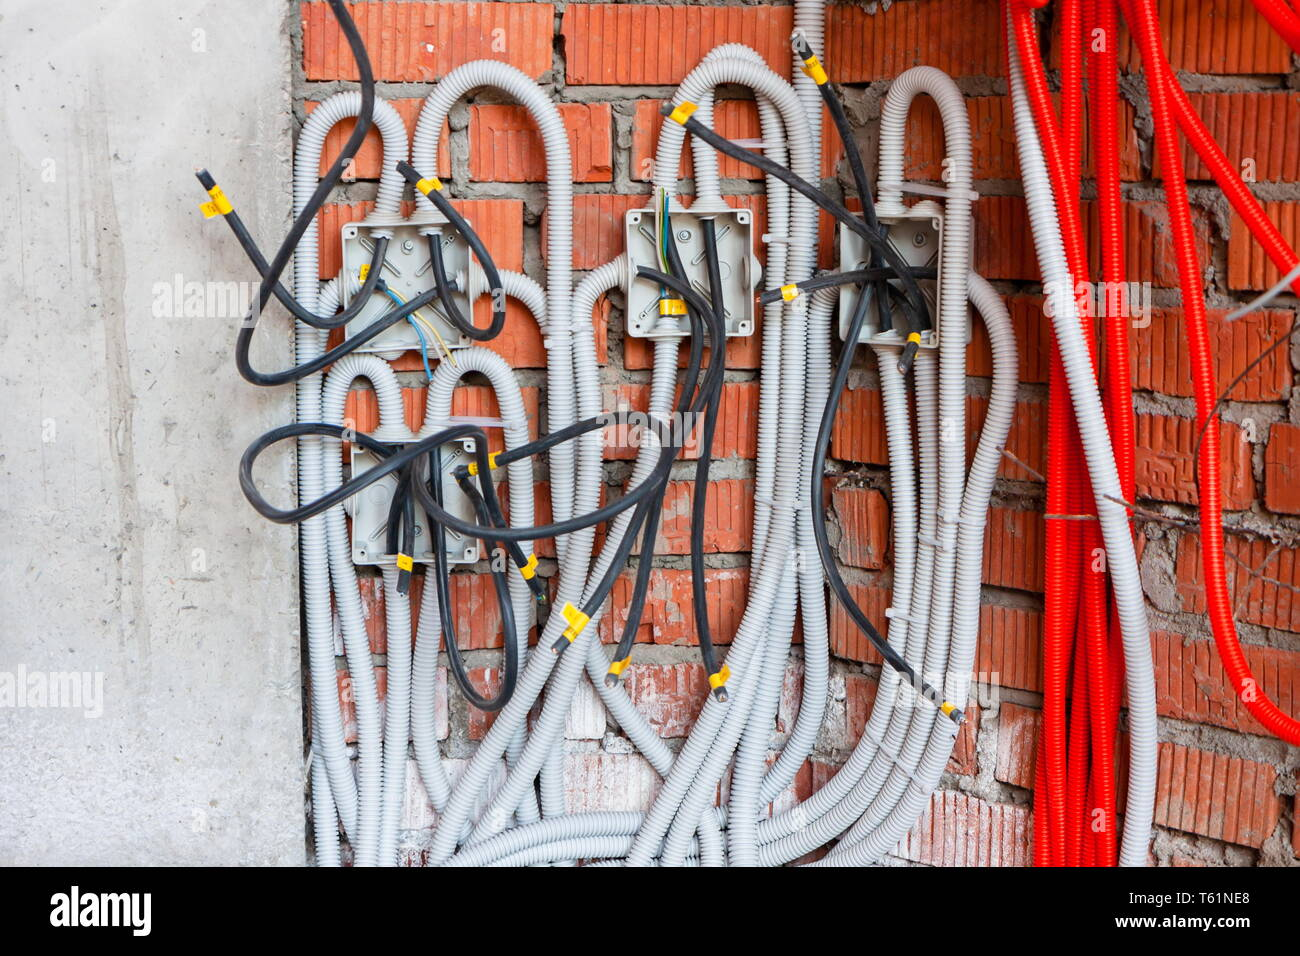 Soldered junction boxes with wires hidden in the corrugation. Realistic Stock Photo